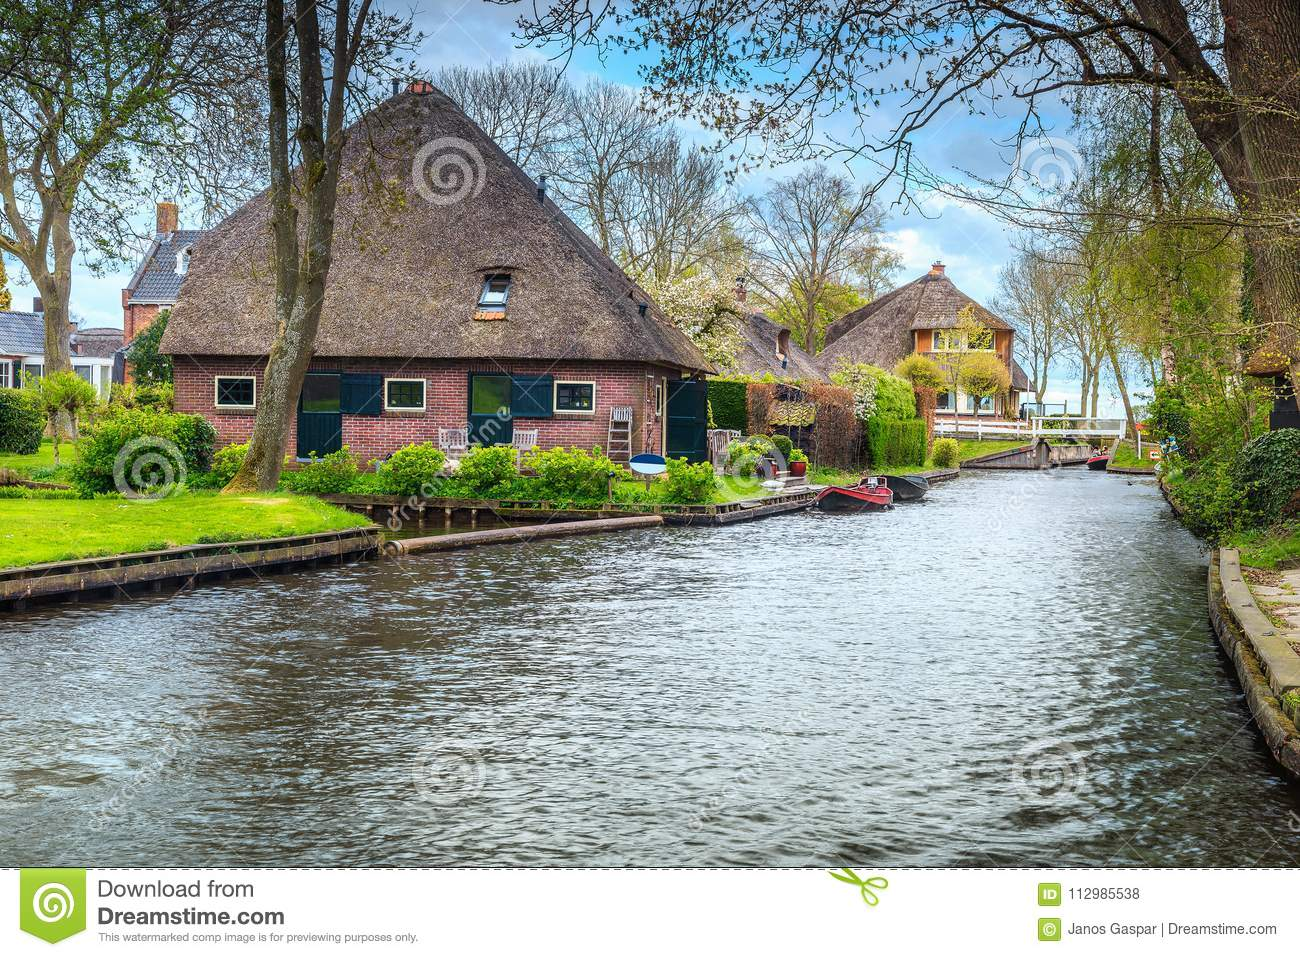 Fabulous dutch village with gardens and houses, Giethoorn, Netherlands, Europe